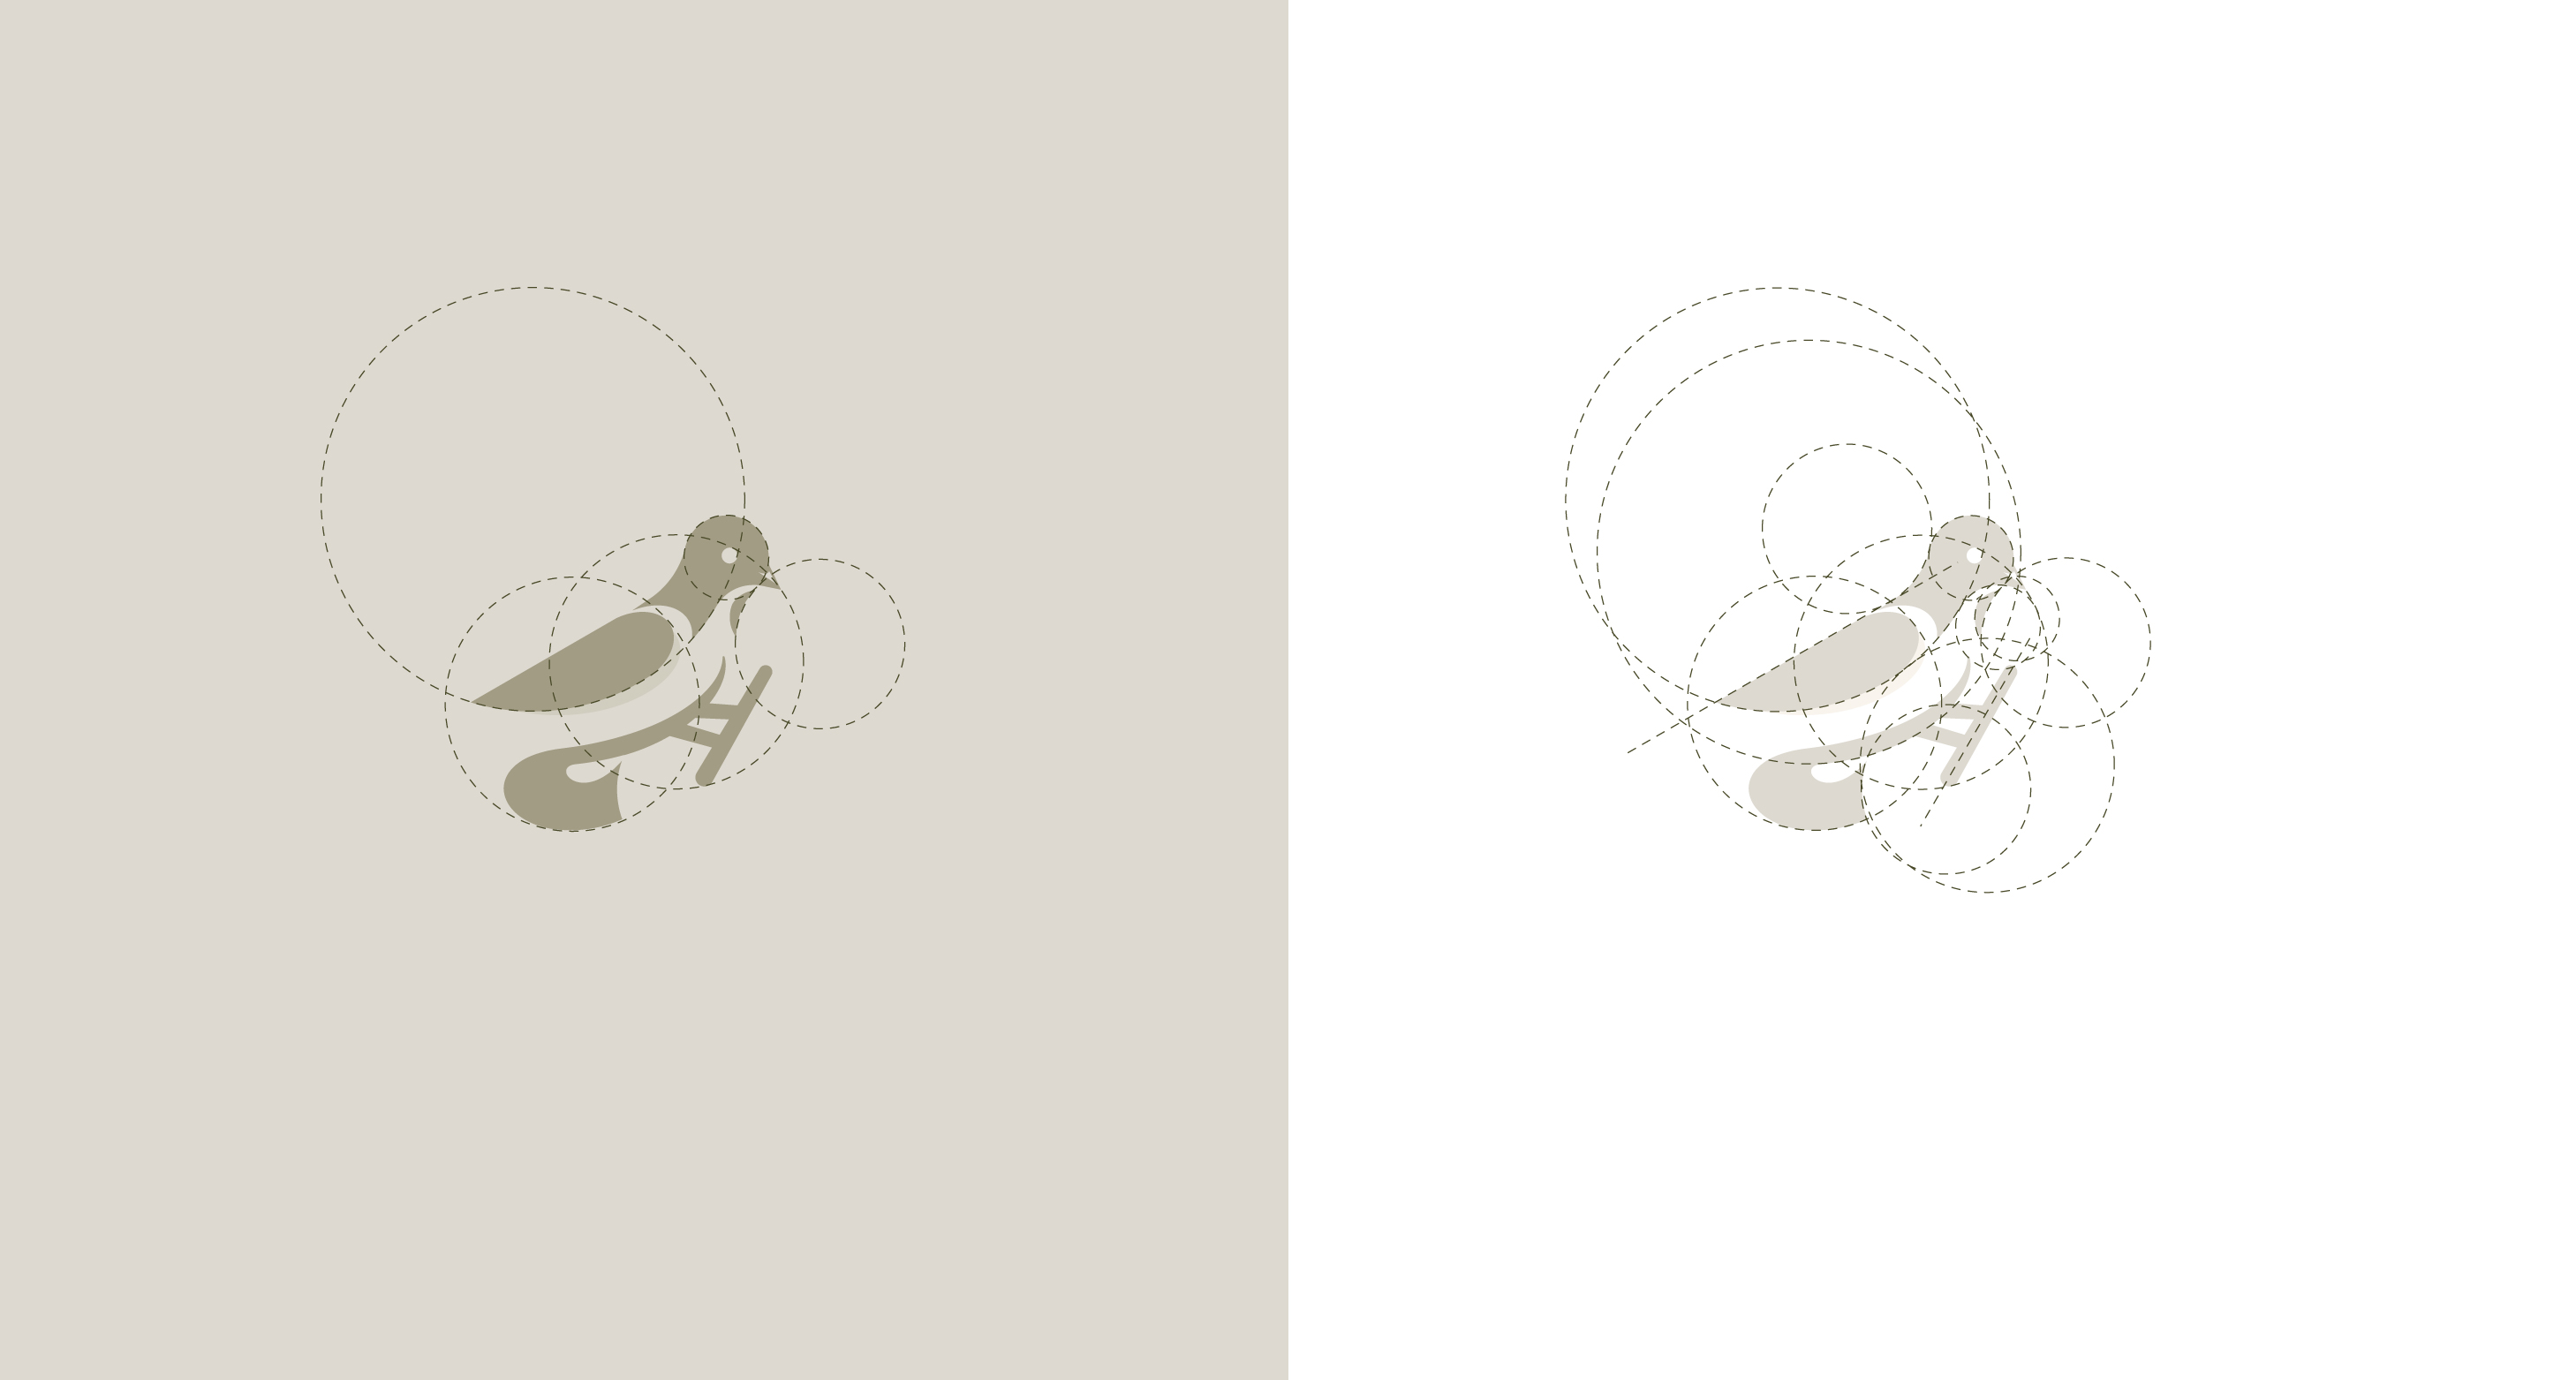 Bird logo design & golden ratio